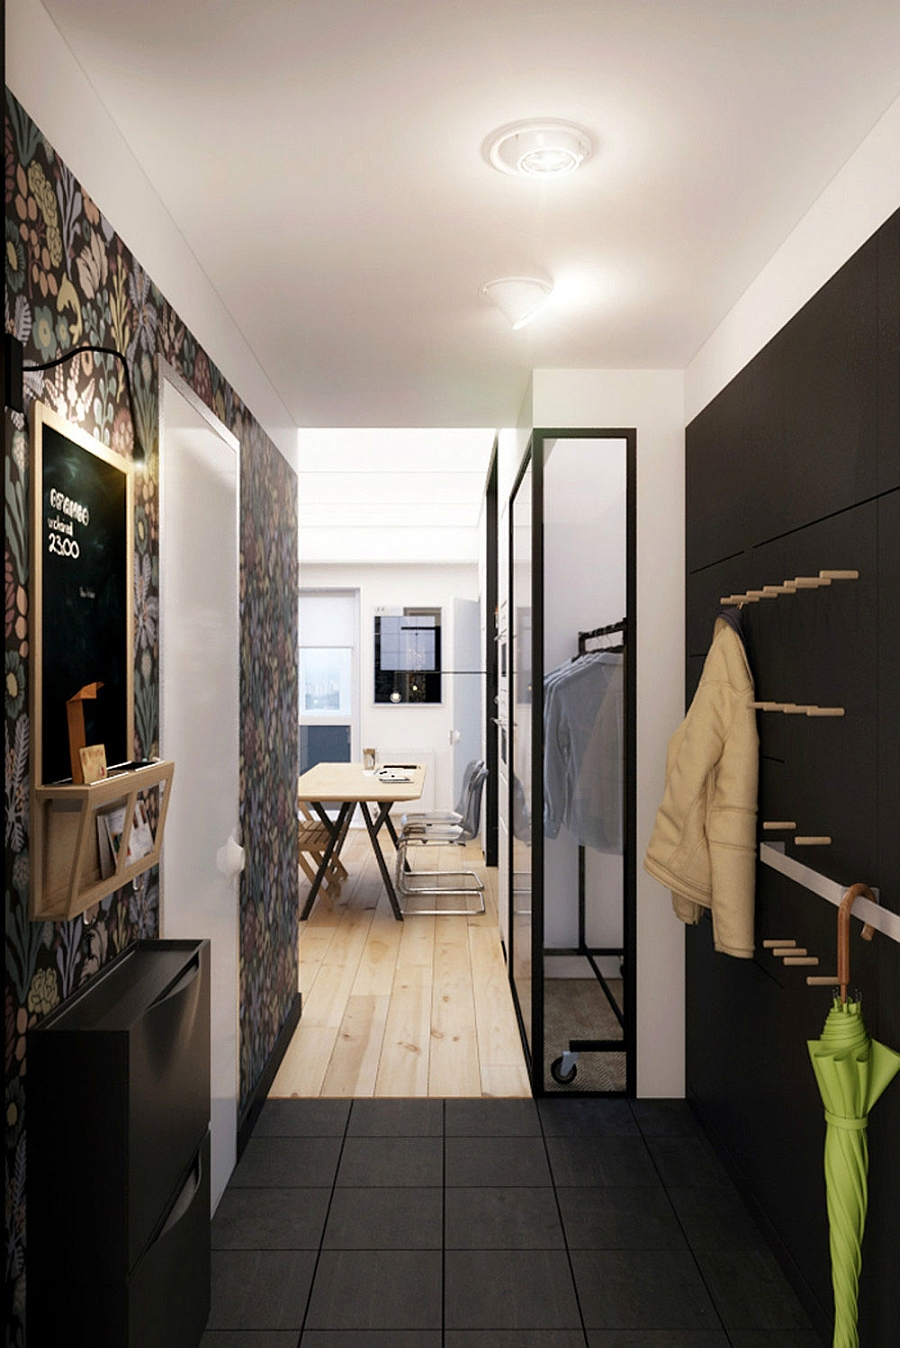 Small entryway clad in black